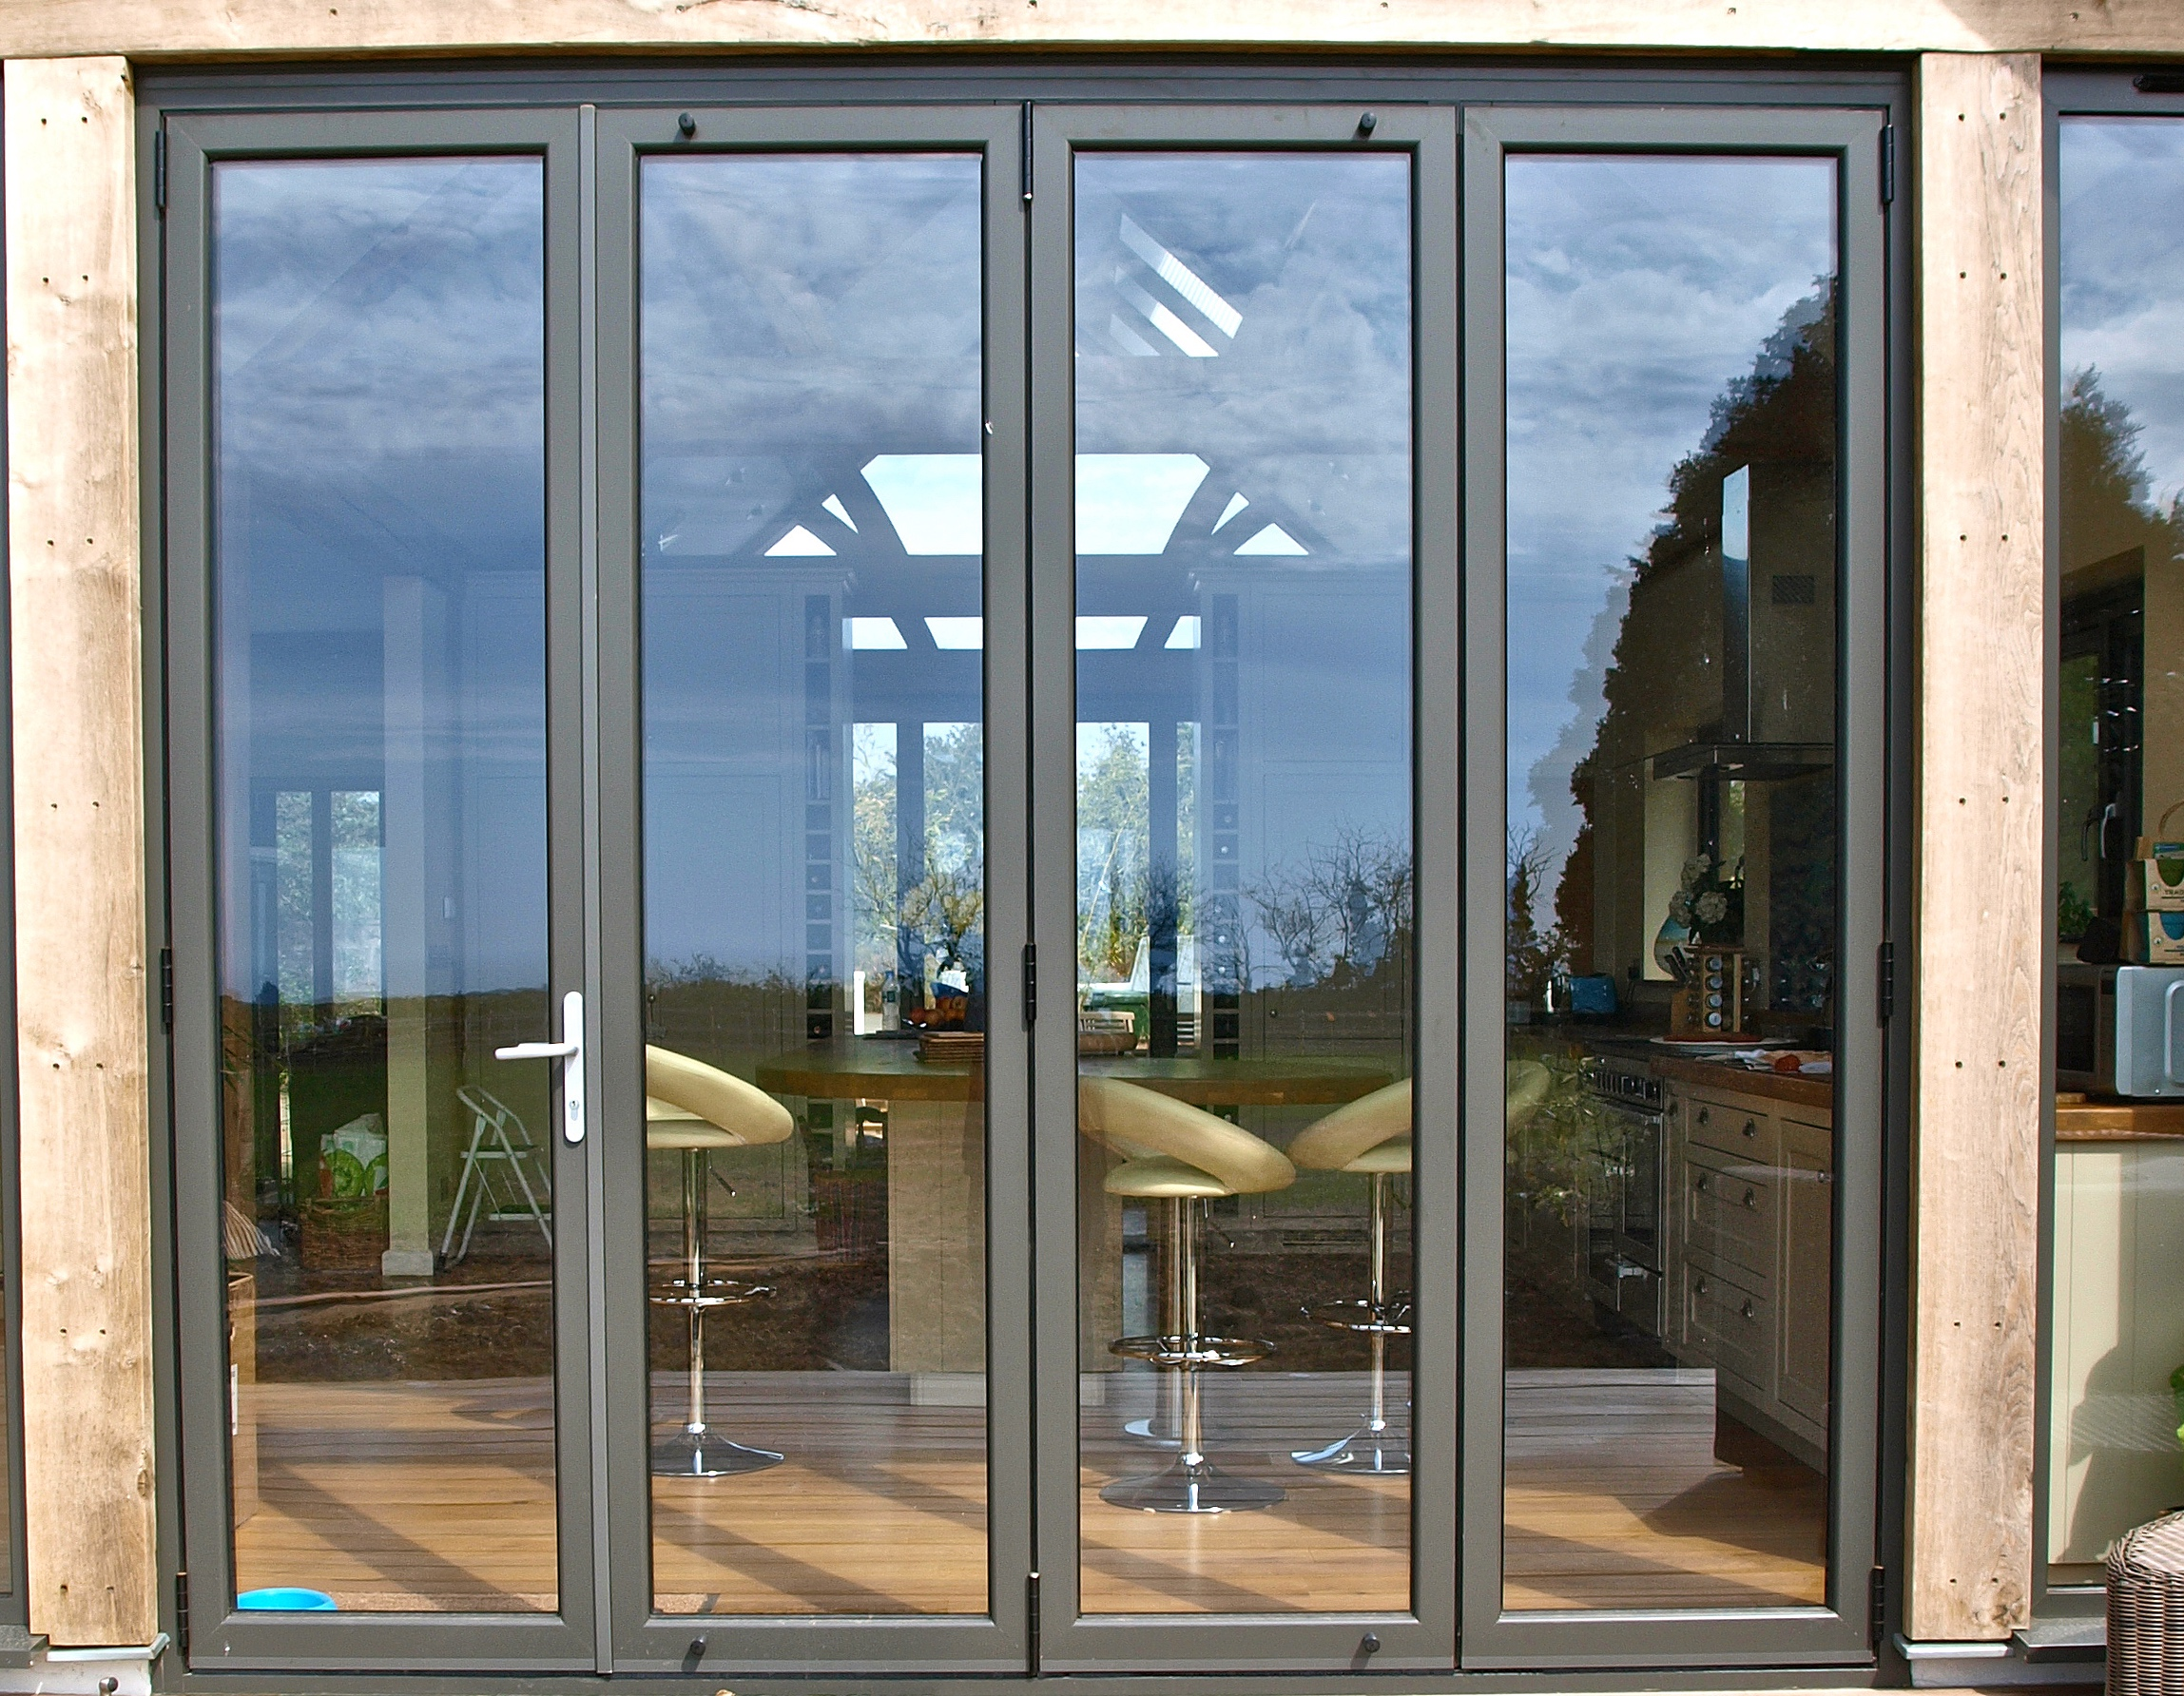 Why Choose Walkern Windows and Homes